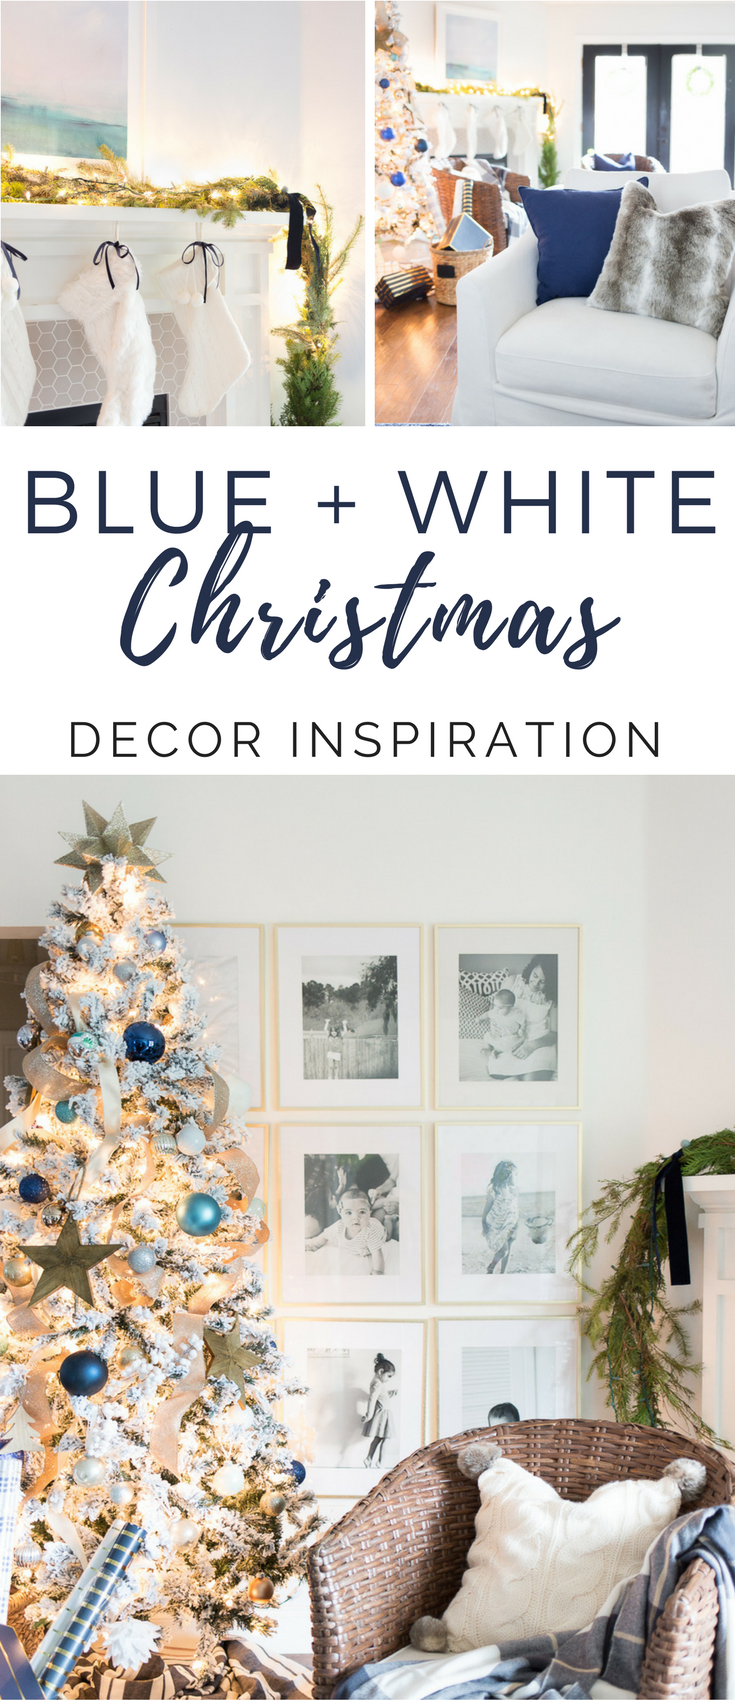 Blue and white Christmas decor #coastalchristmas #blueandwhiteholiday #bluechristmas